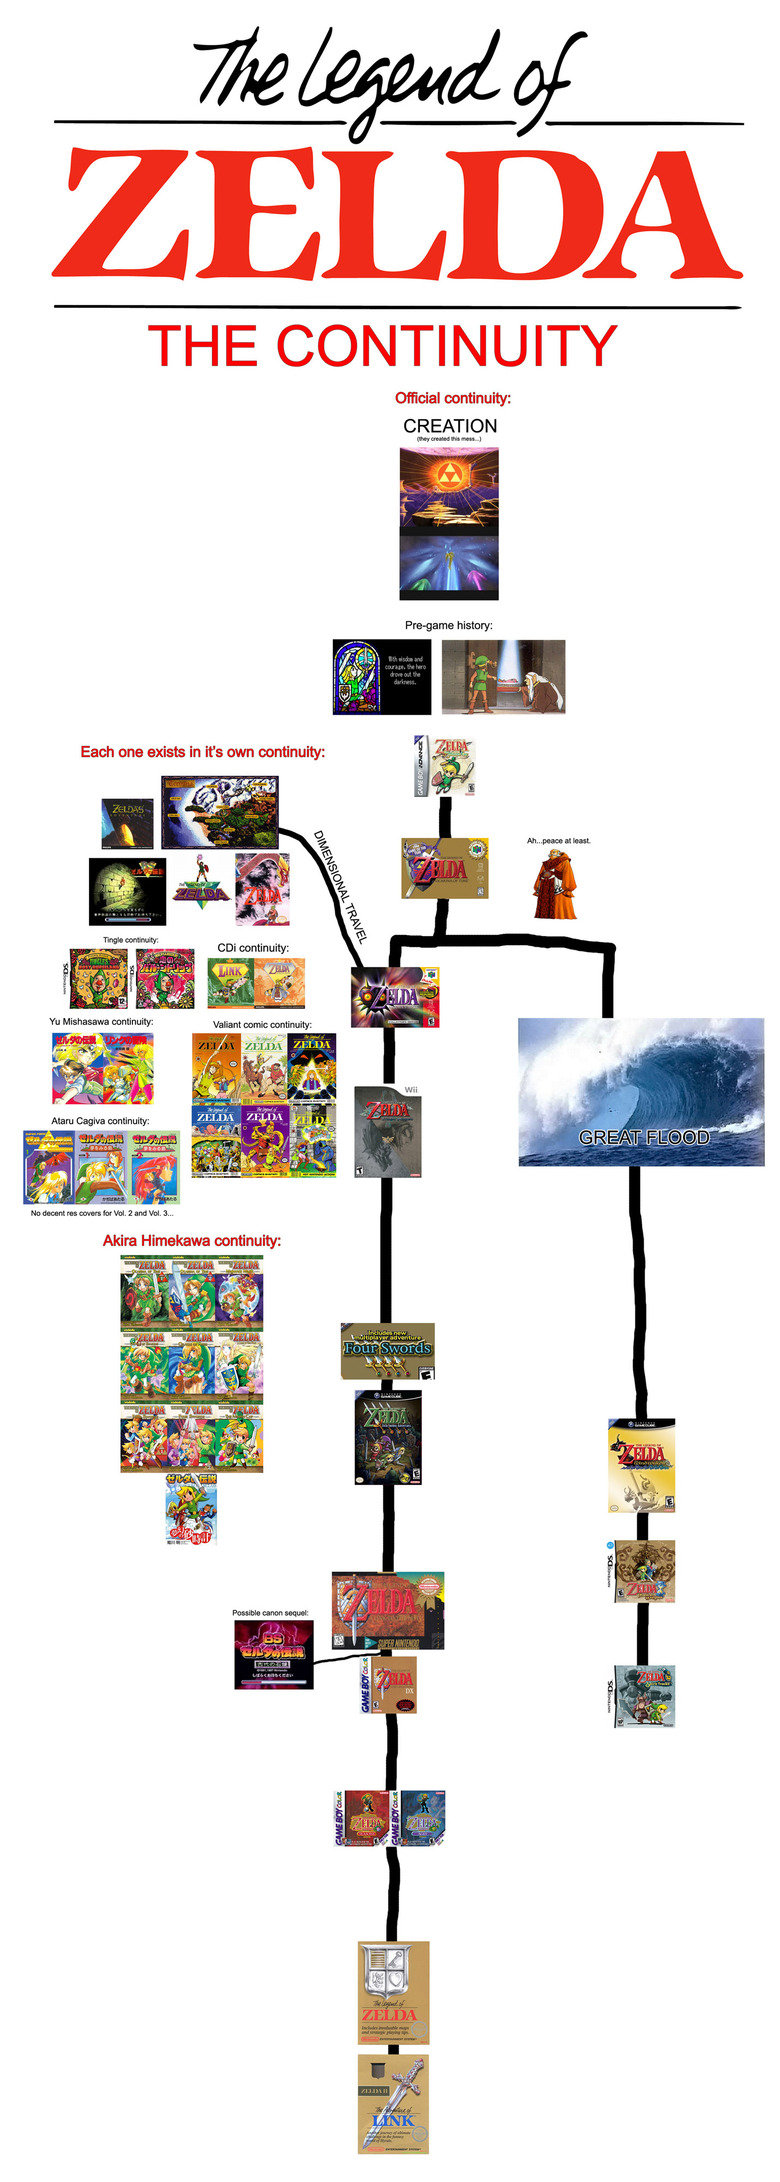 The Legend of Zelda: Timeline Edition. . THE CONTINUITY Official continuity: CREATION Each one exists in it' s own continuity: Na decent to: cover: for WI. 2 an